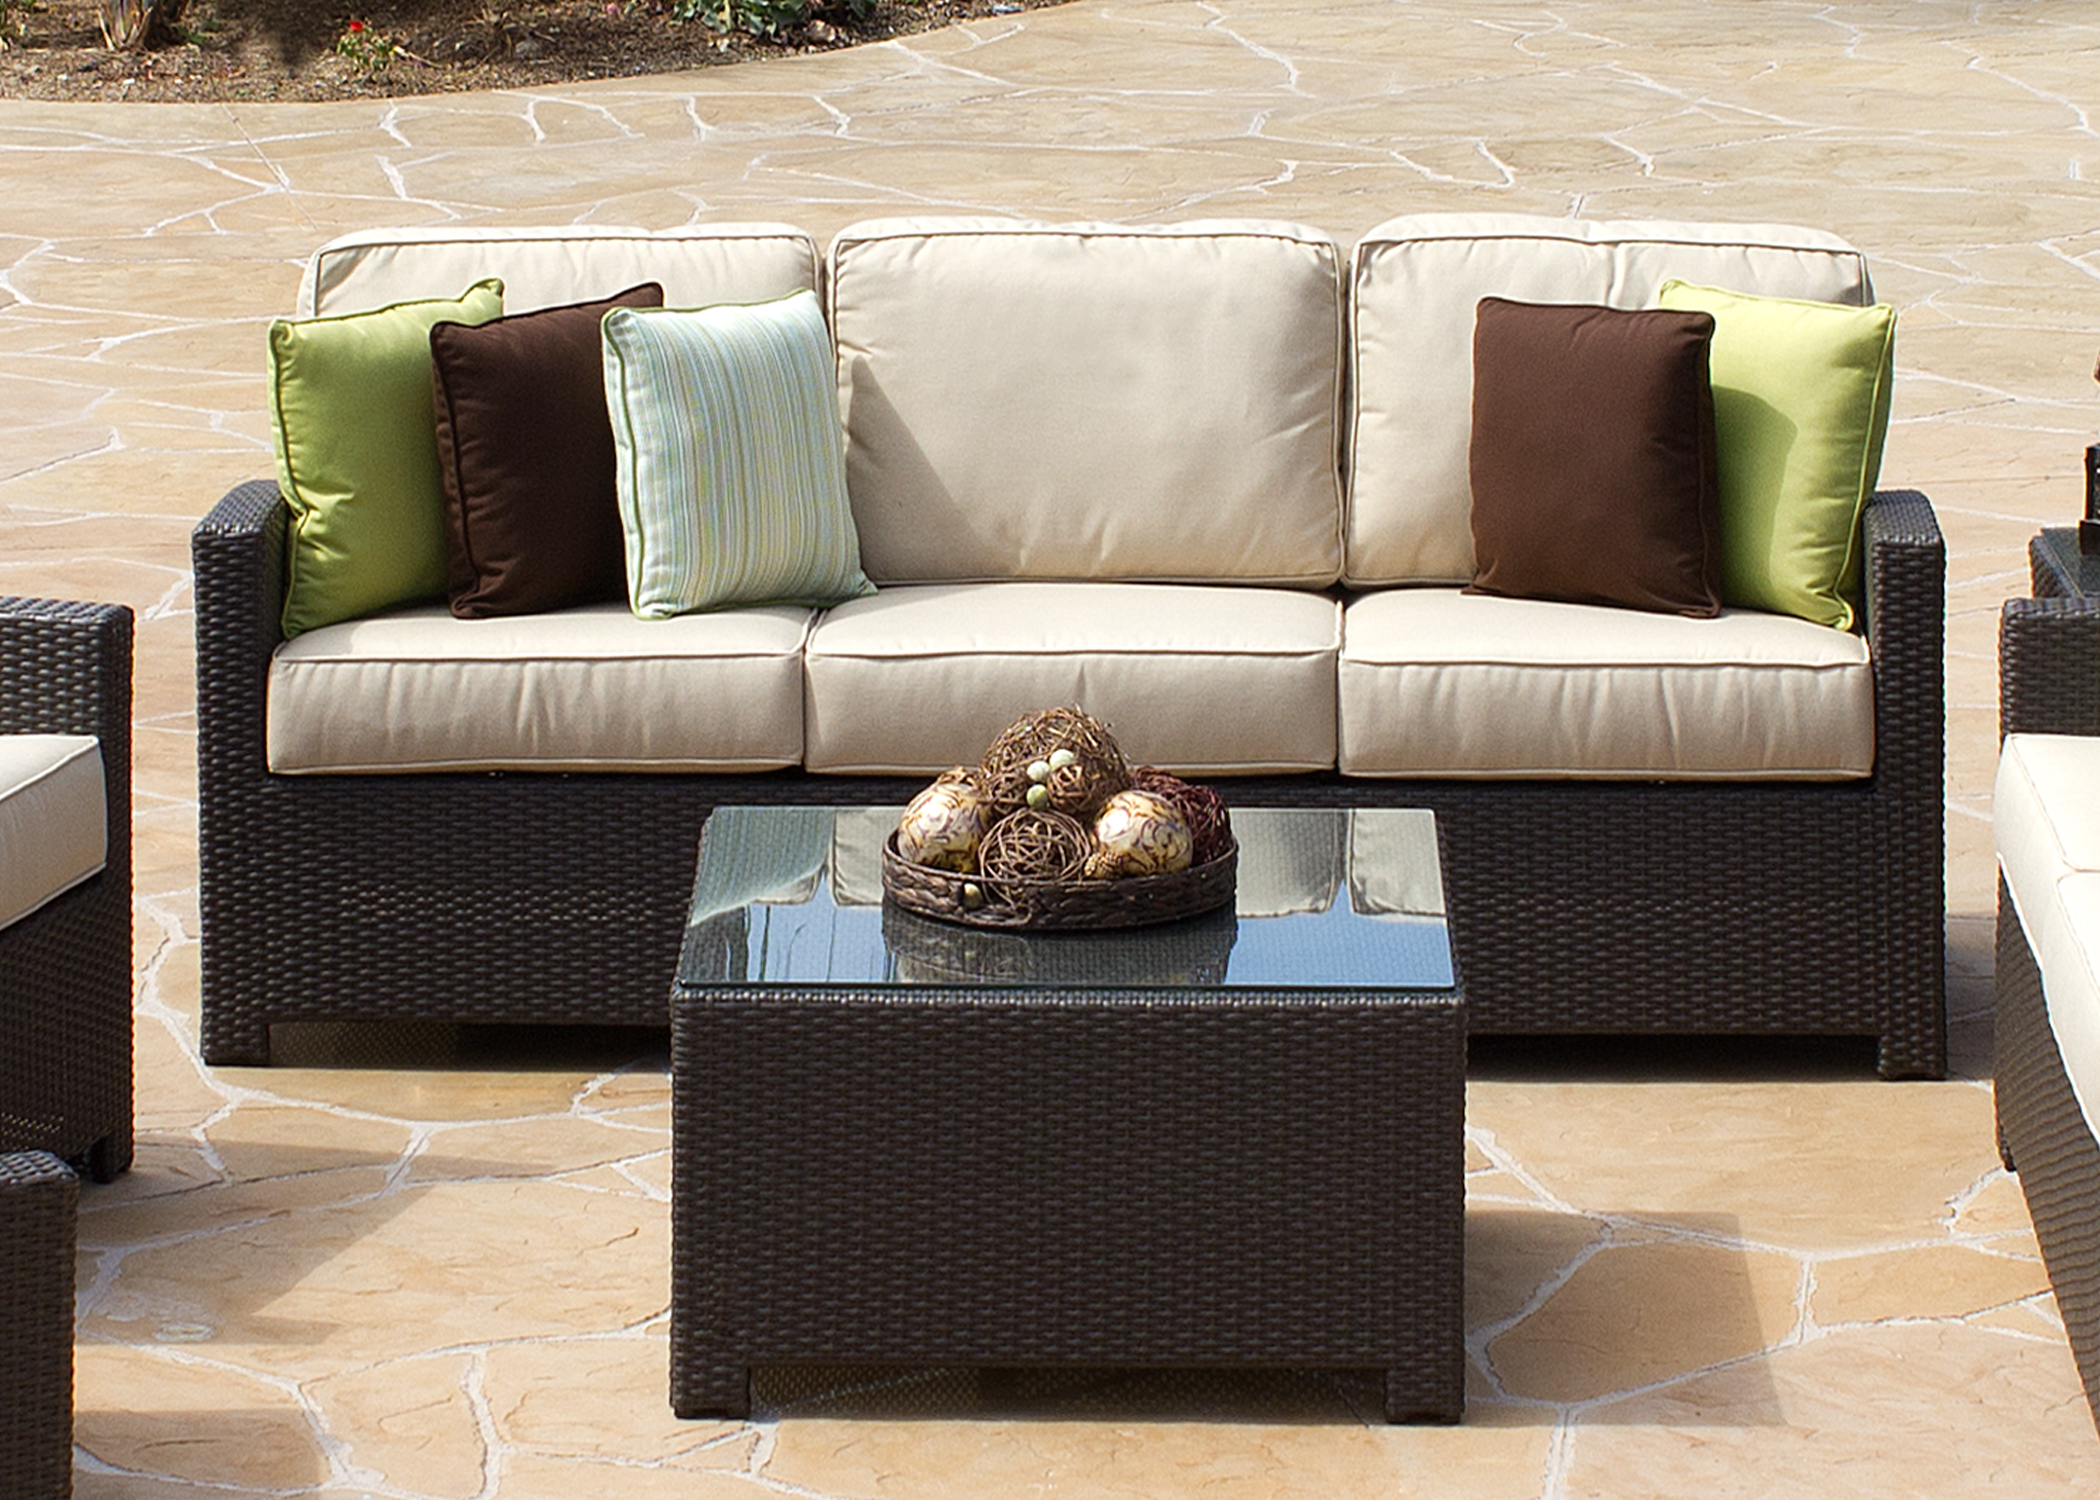 Northcape International Outdoor Furniture Nevada Outdoor